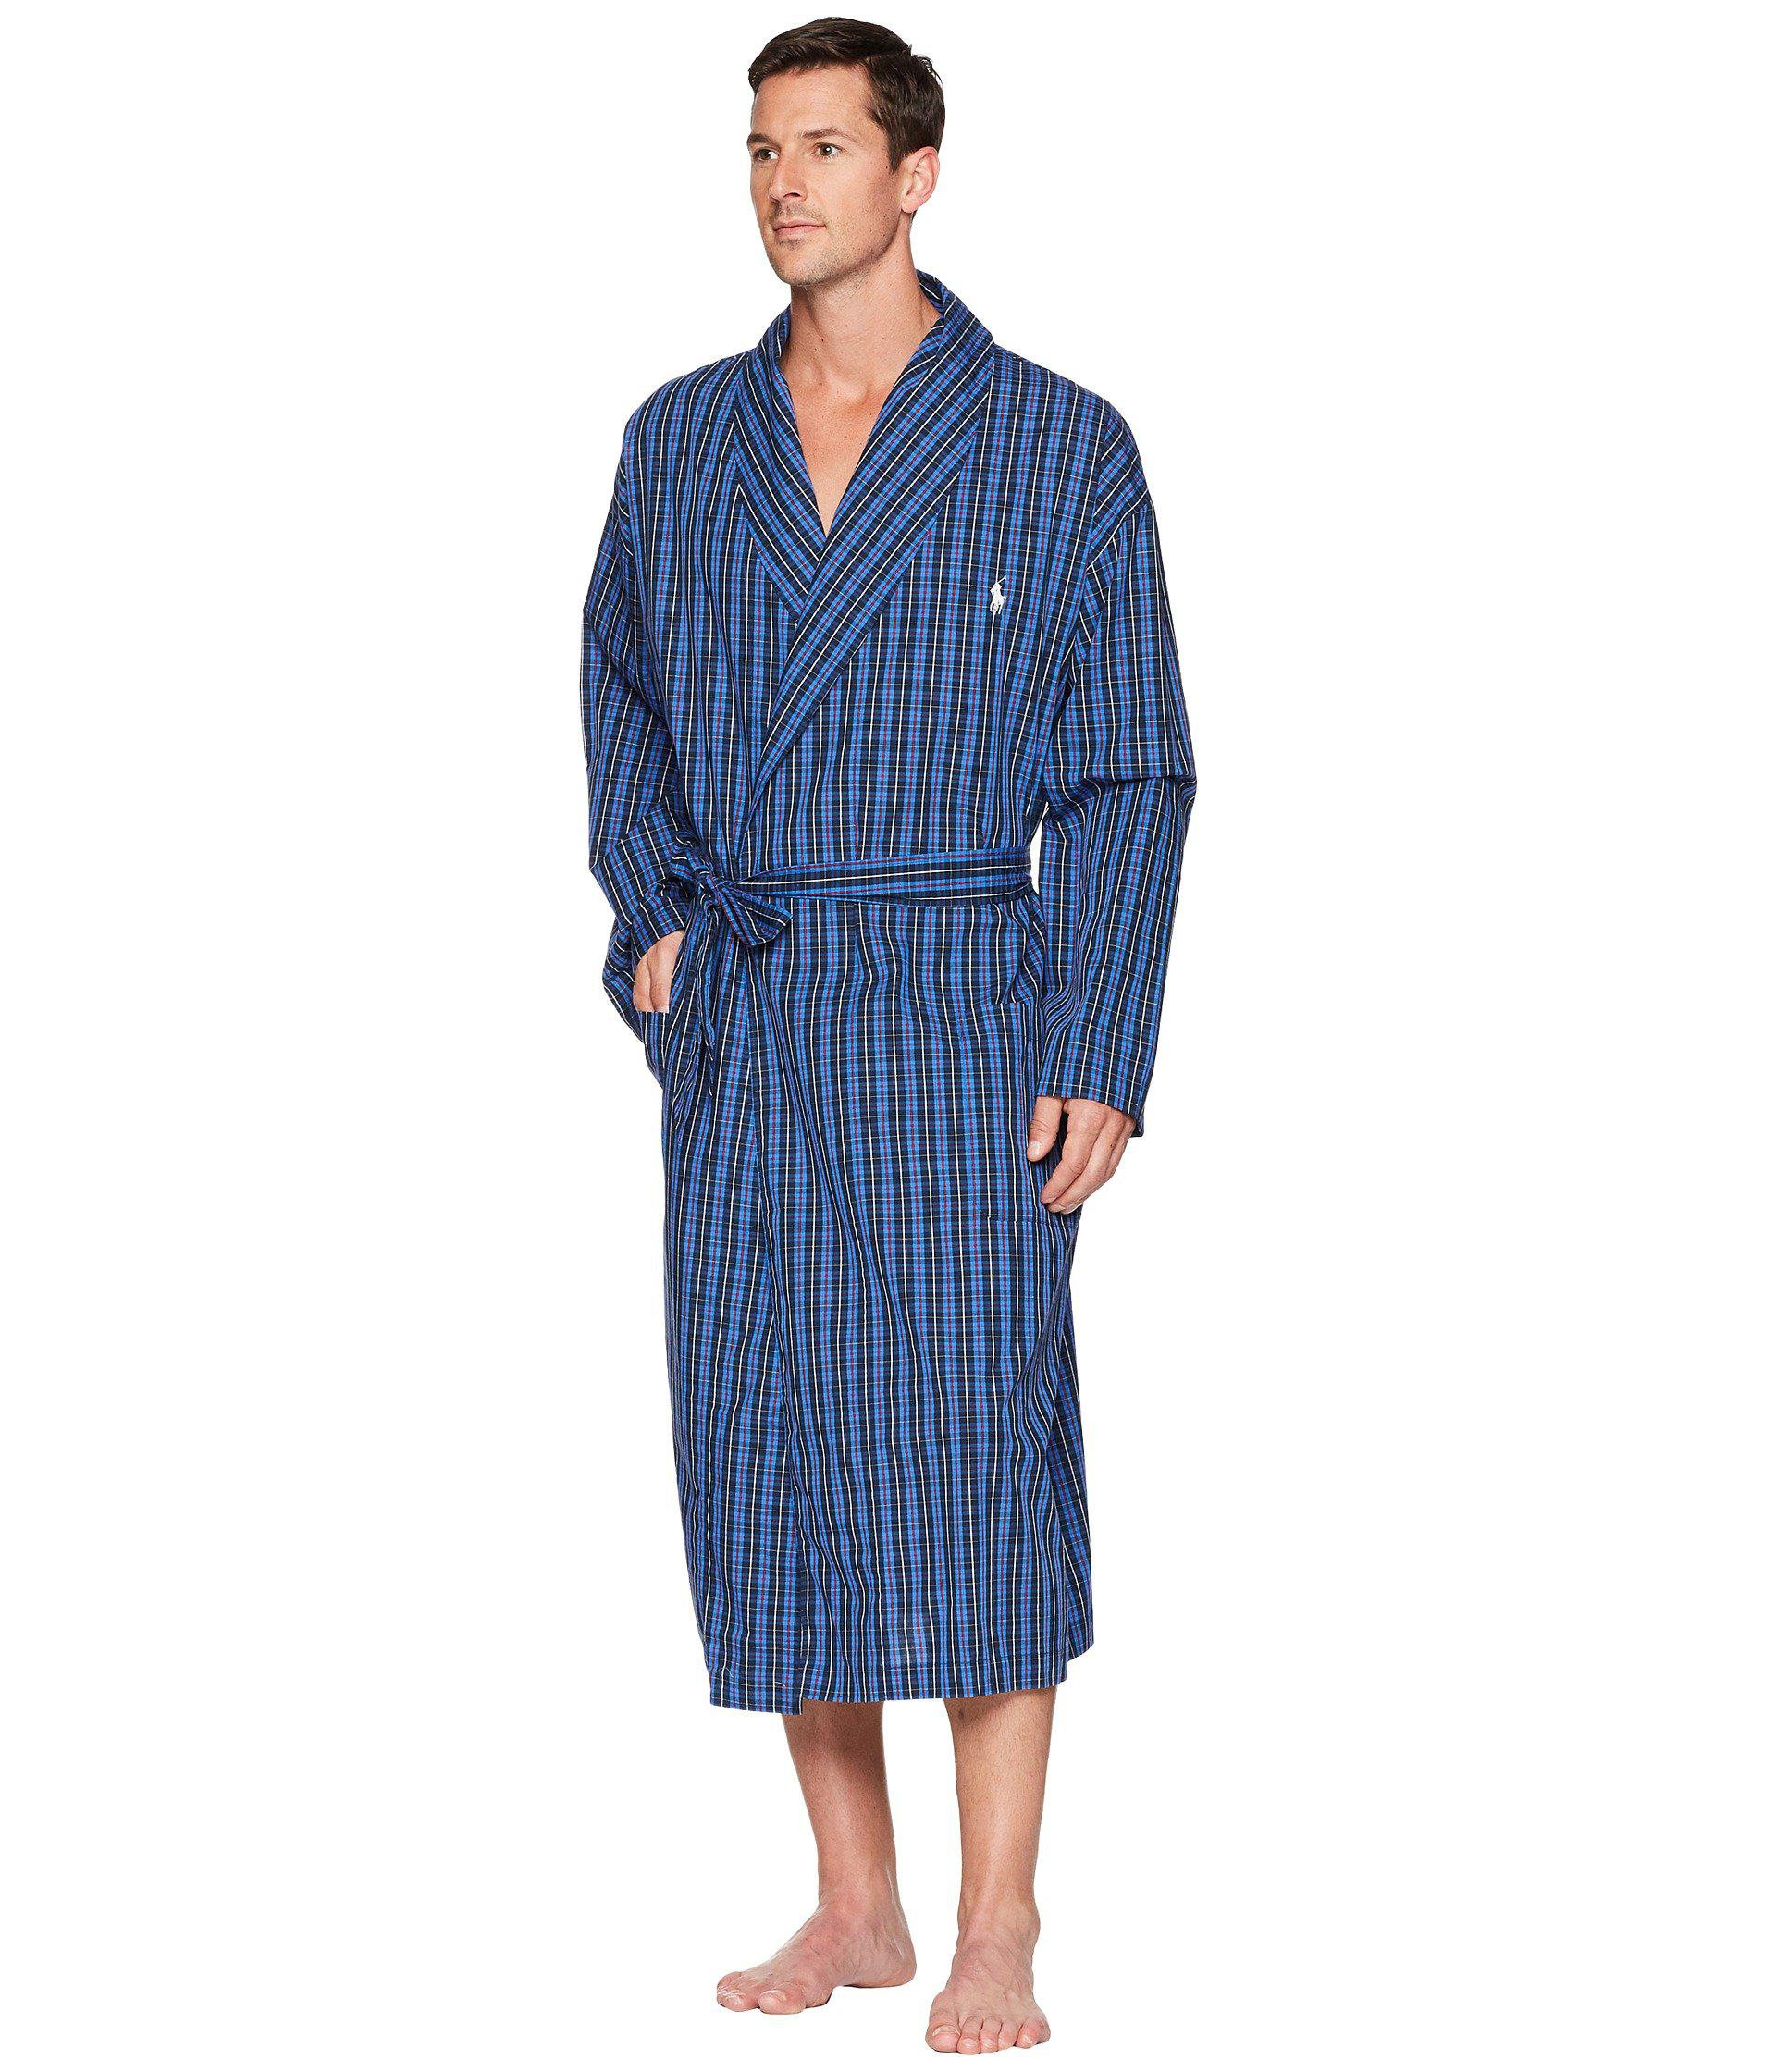 6b53a388a28 ... greece lyst polo ralph lauren woven robe harwick plaid mens robe in  blue for men d3063